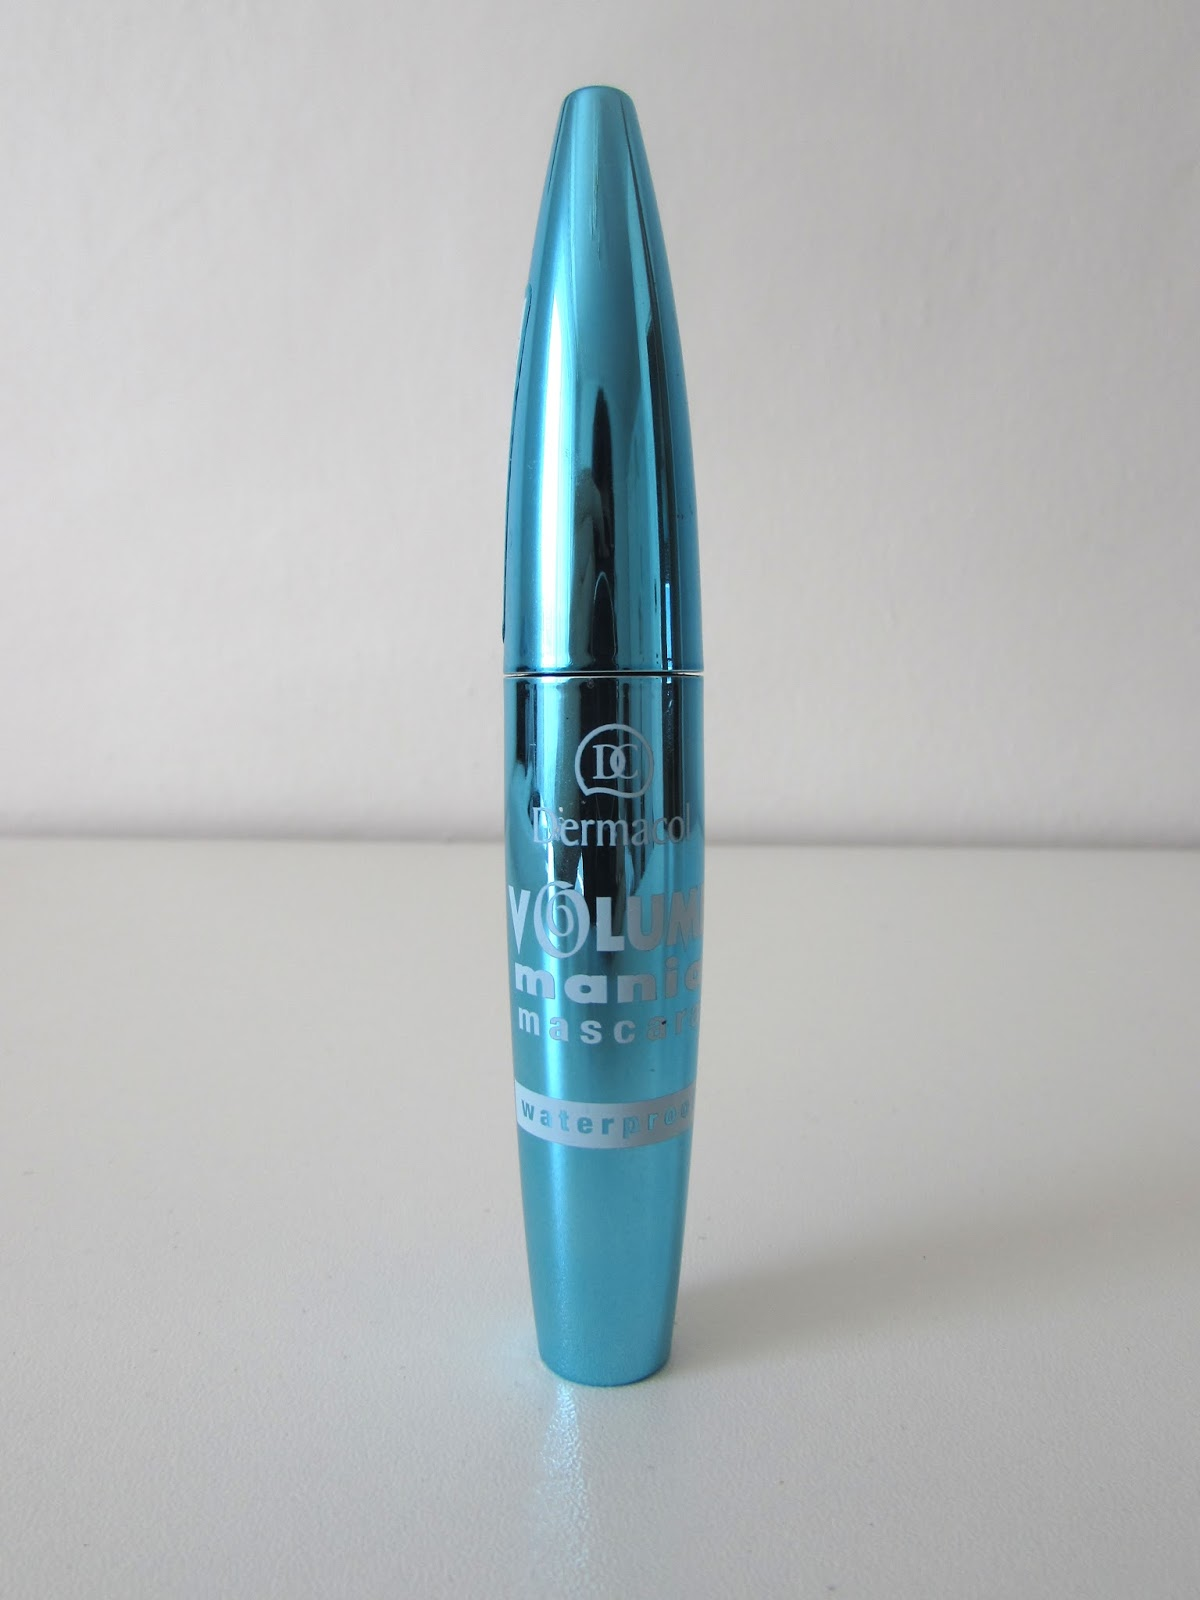 mascara-dermacol-make-up-waterproof-volume-mania-mascara-04